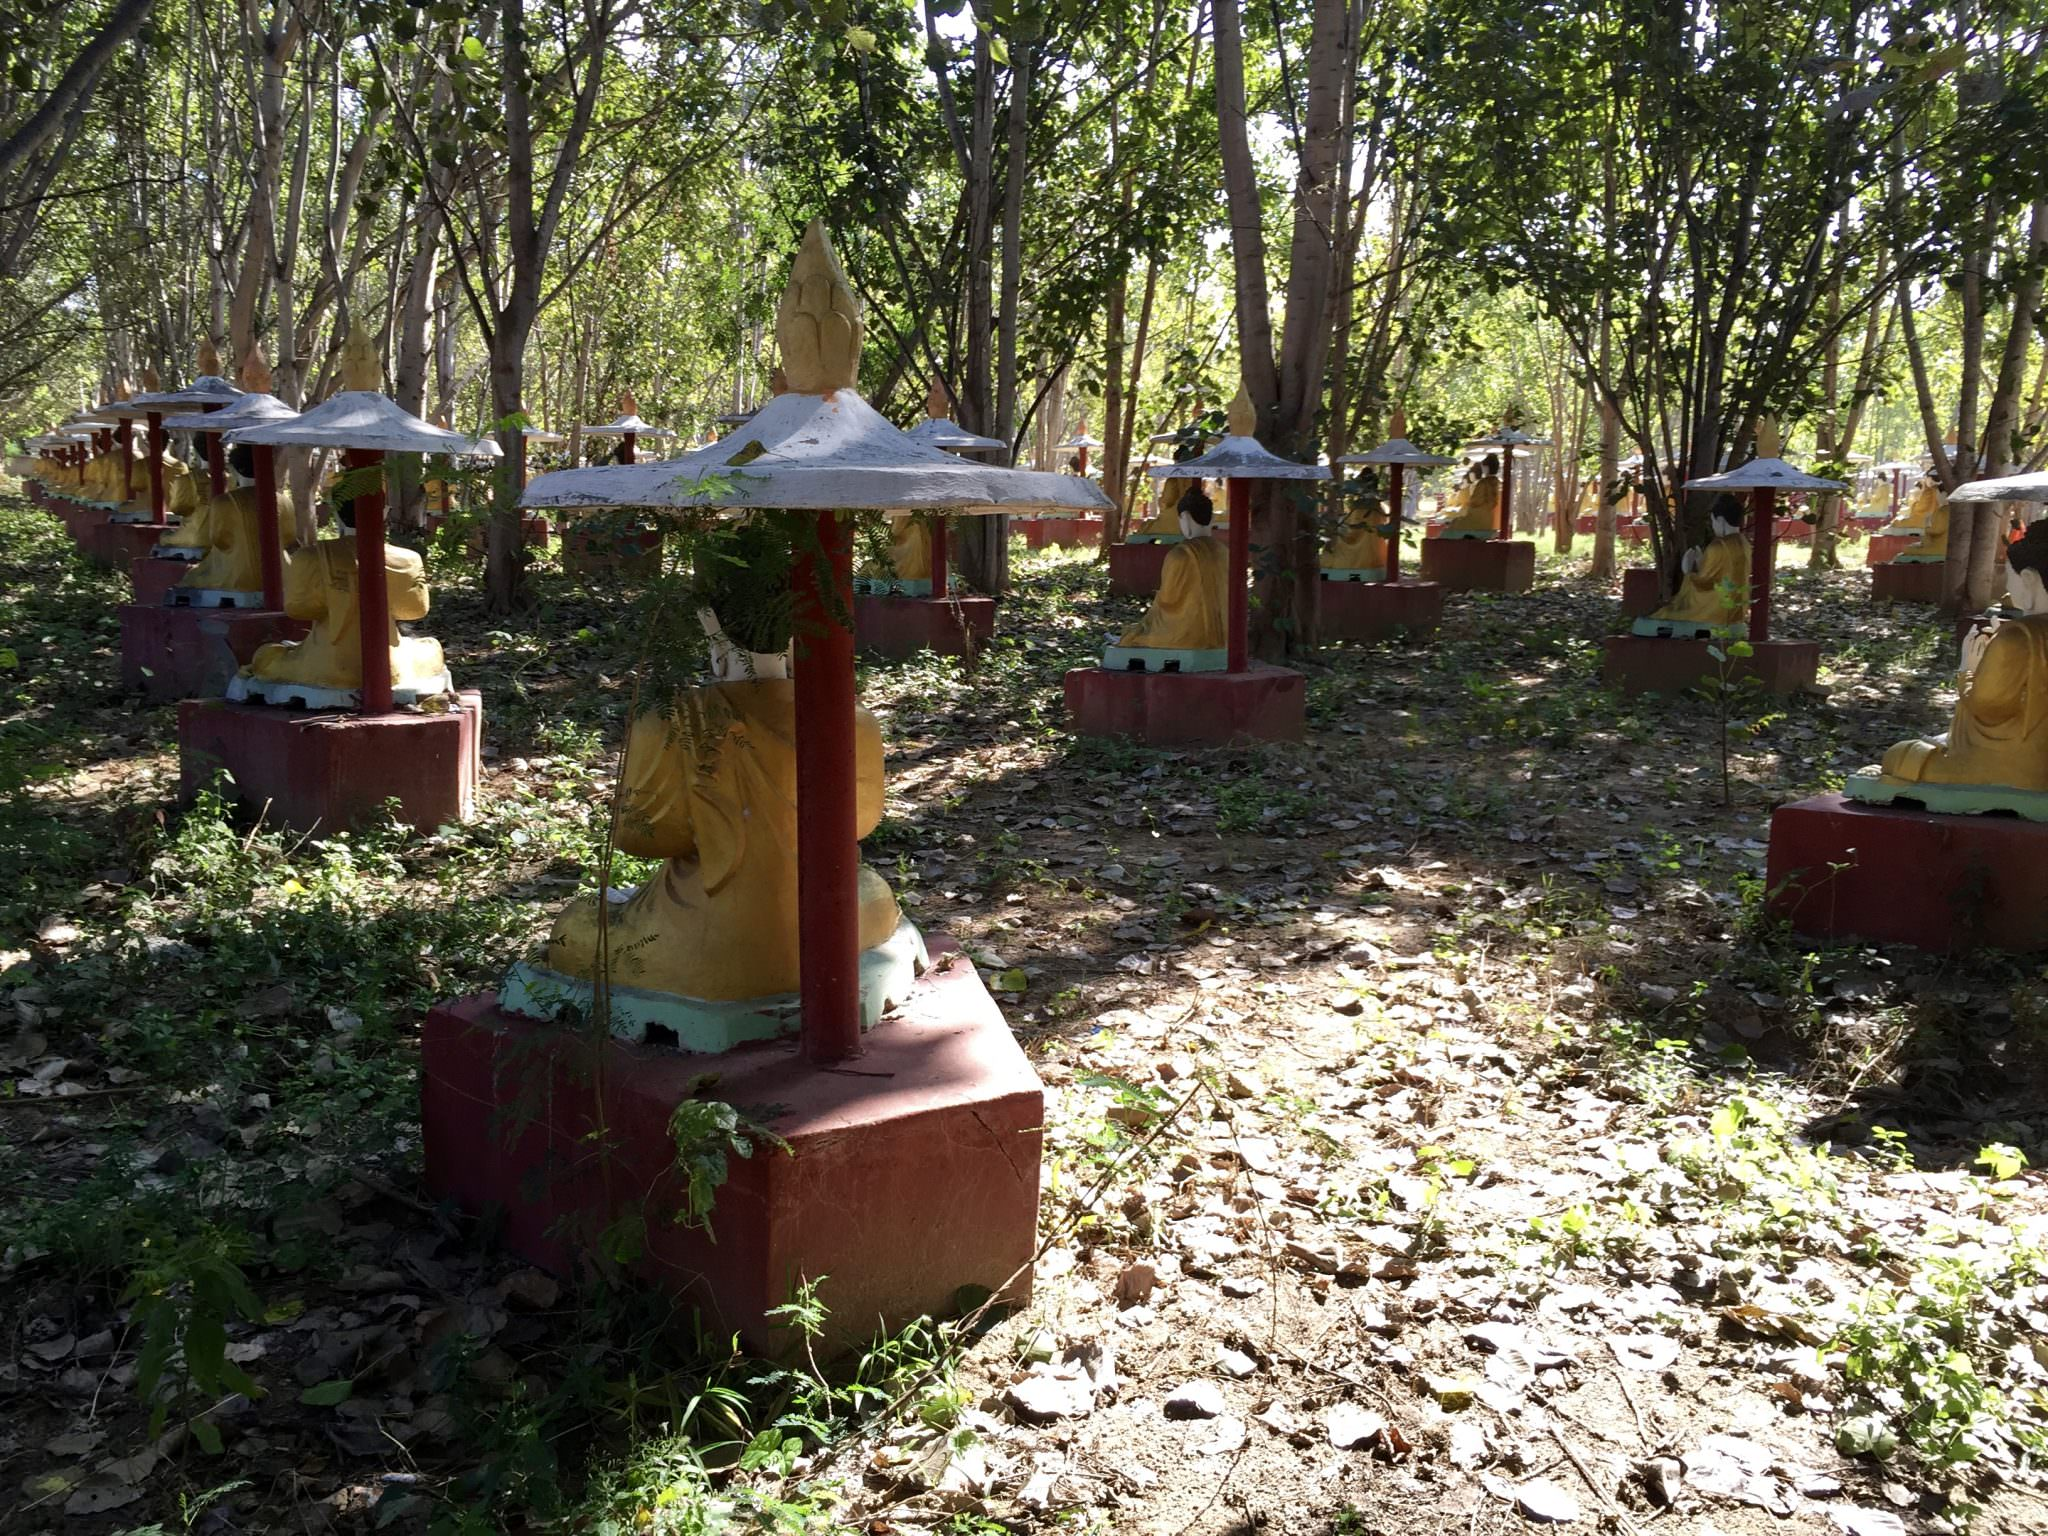 Row upon row upon row of Buddha statues. © 2015 Gail Jessen